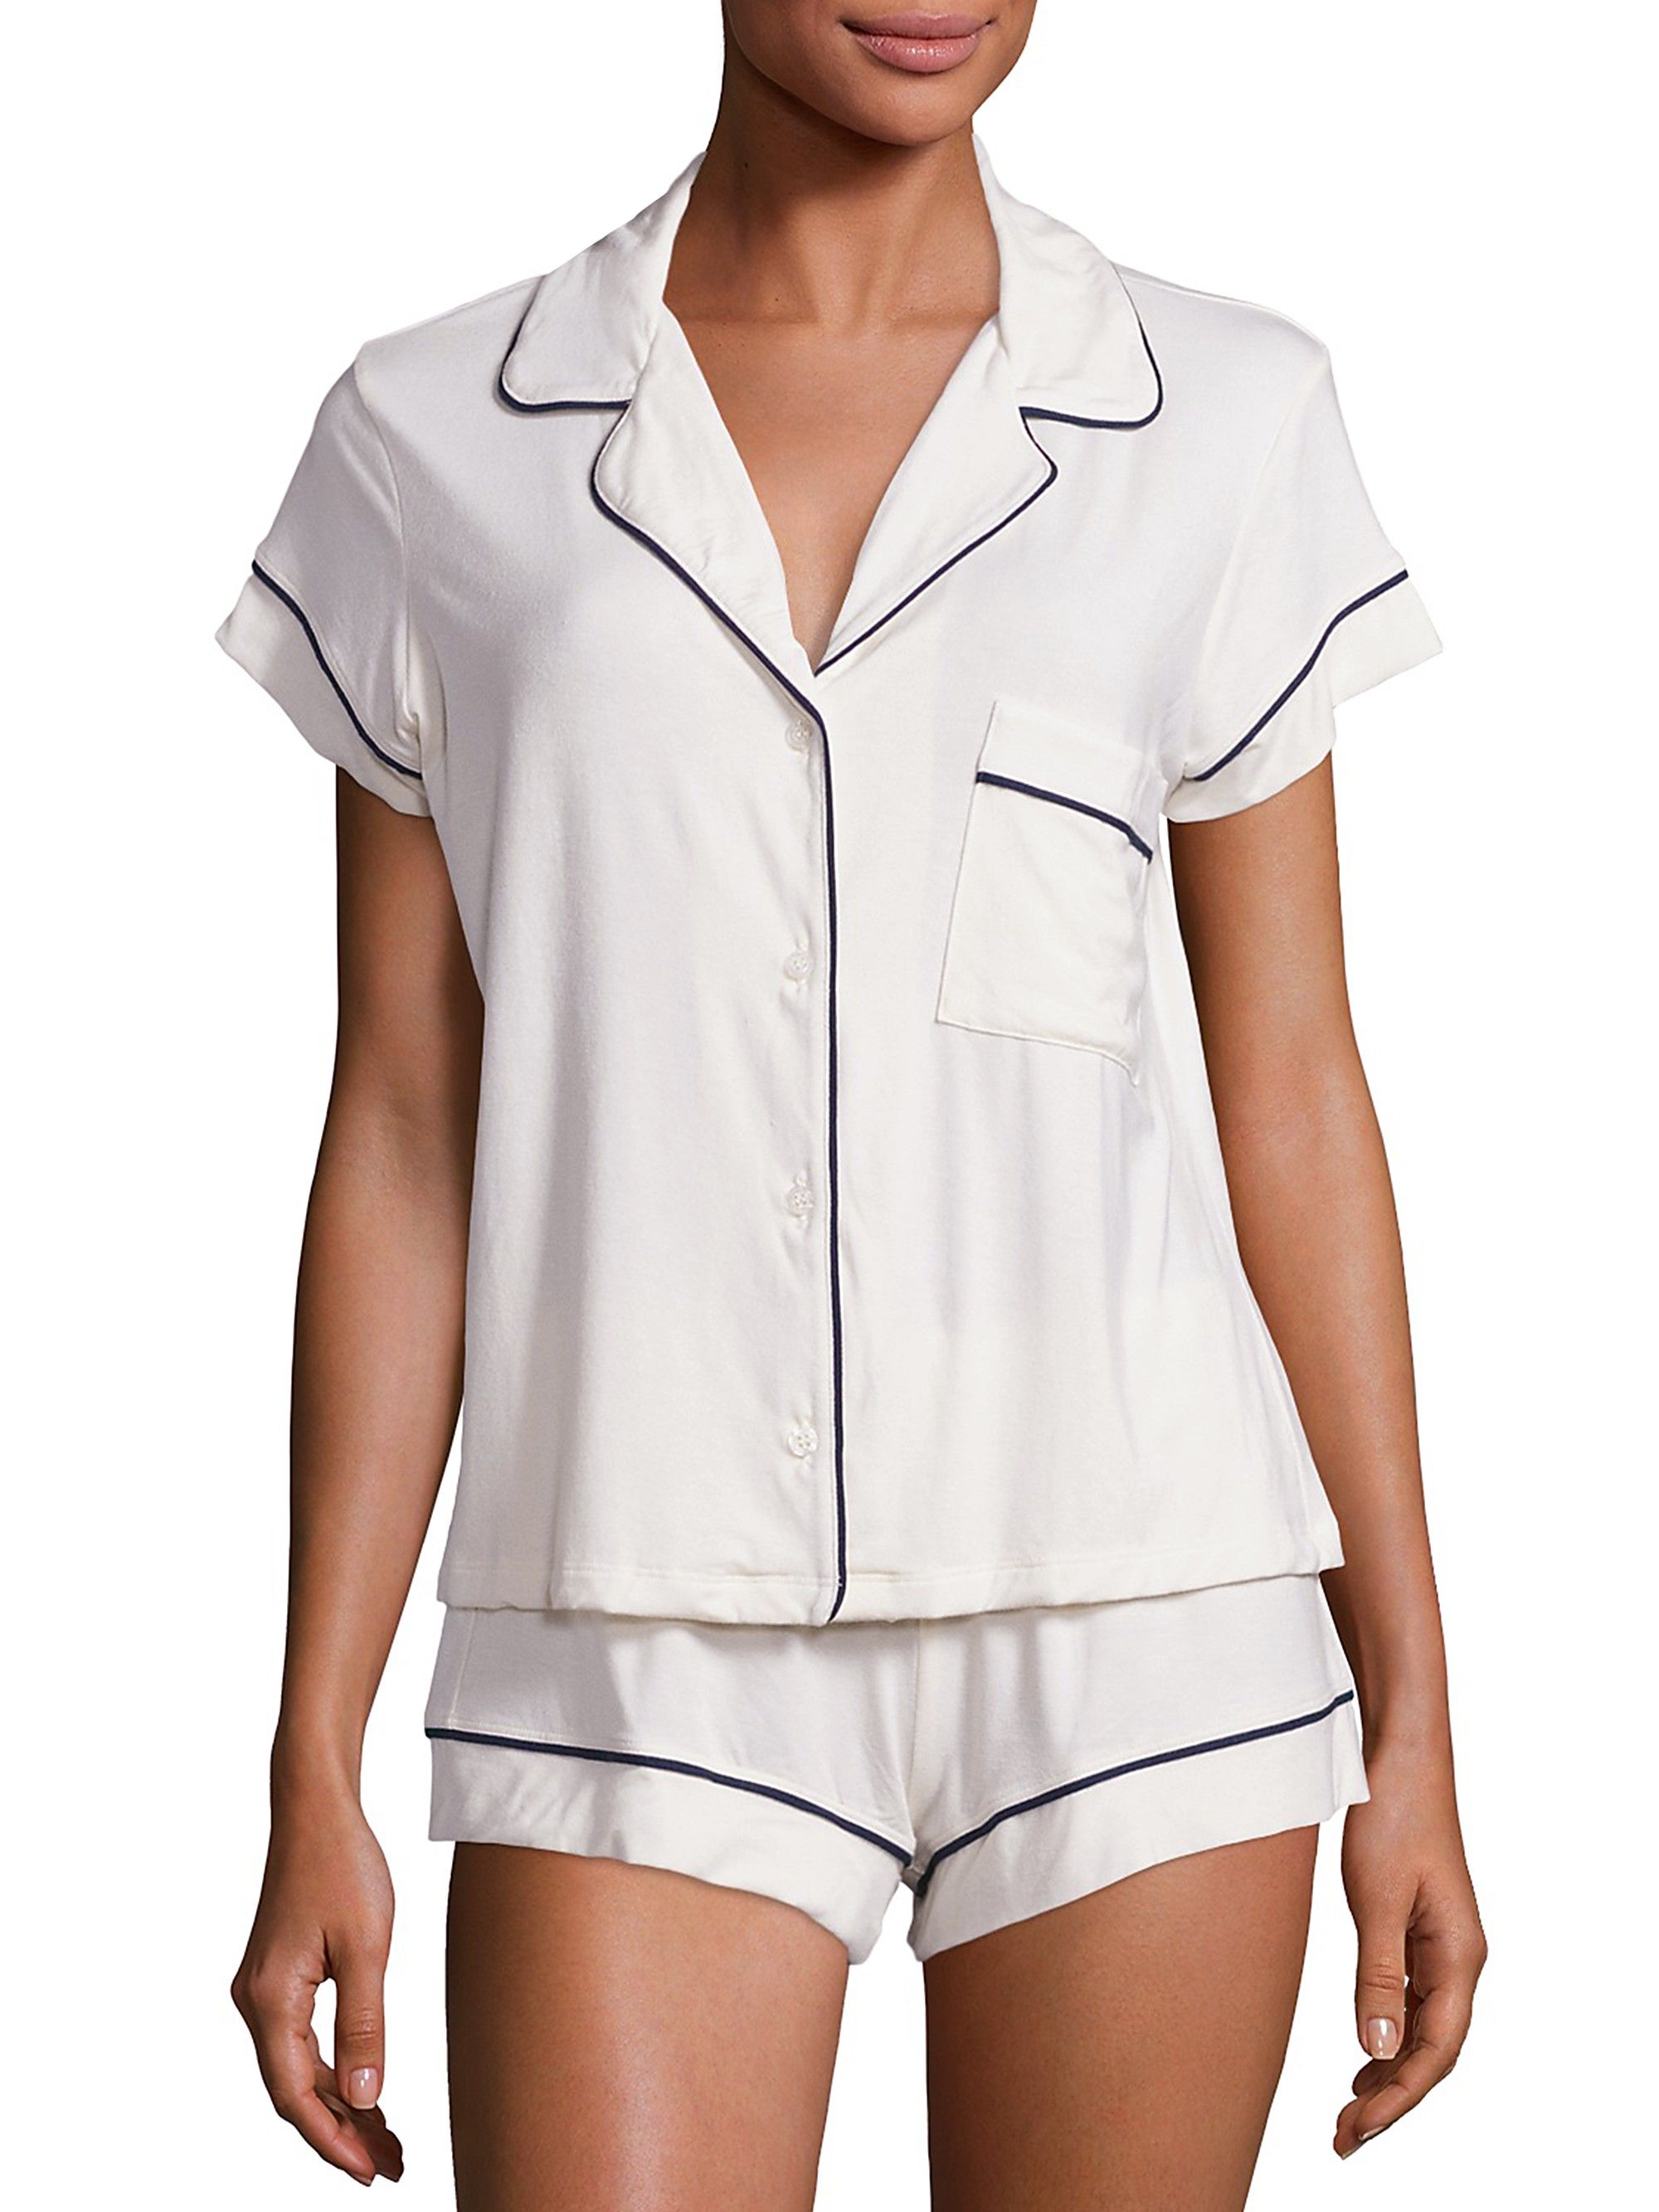 772fd73478 Eberjey Gisele Short-Sleeve Pajama Top And Shorts - Navy Small in ...